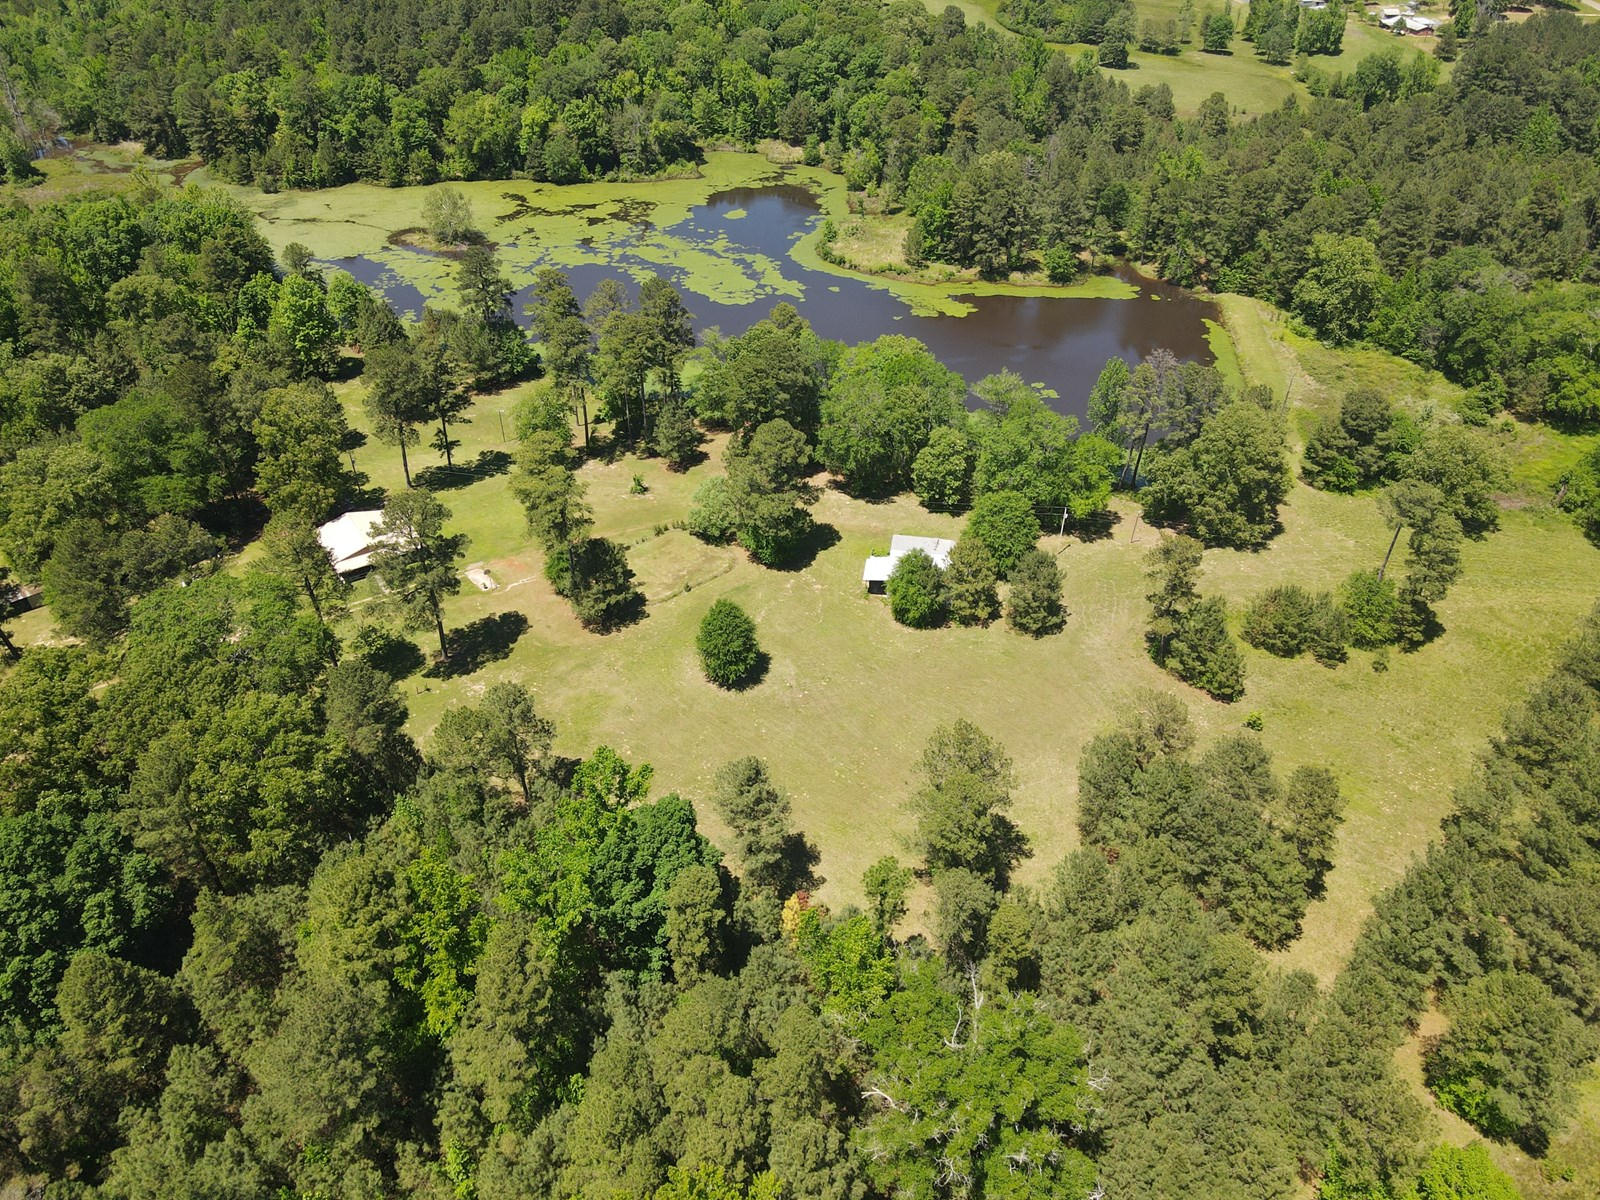 East Texas Ranch Lake Hunting Property for Sale, Cass Co, TX